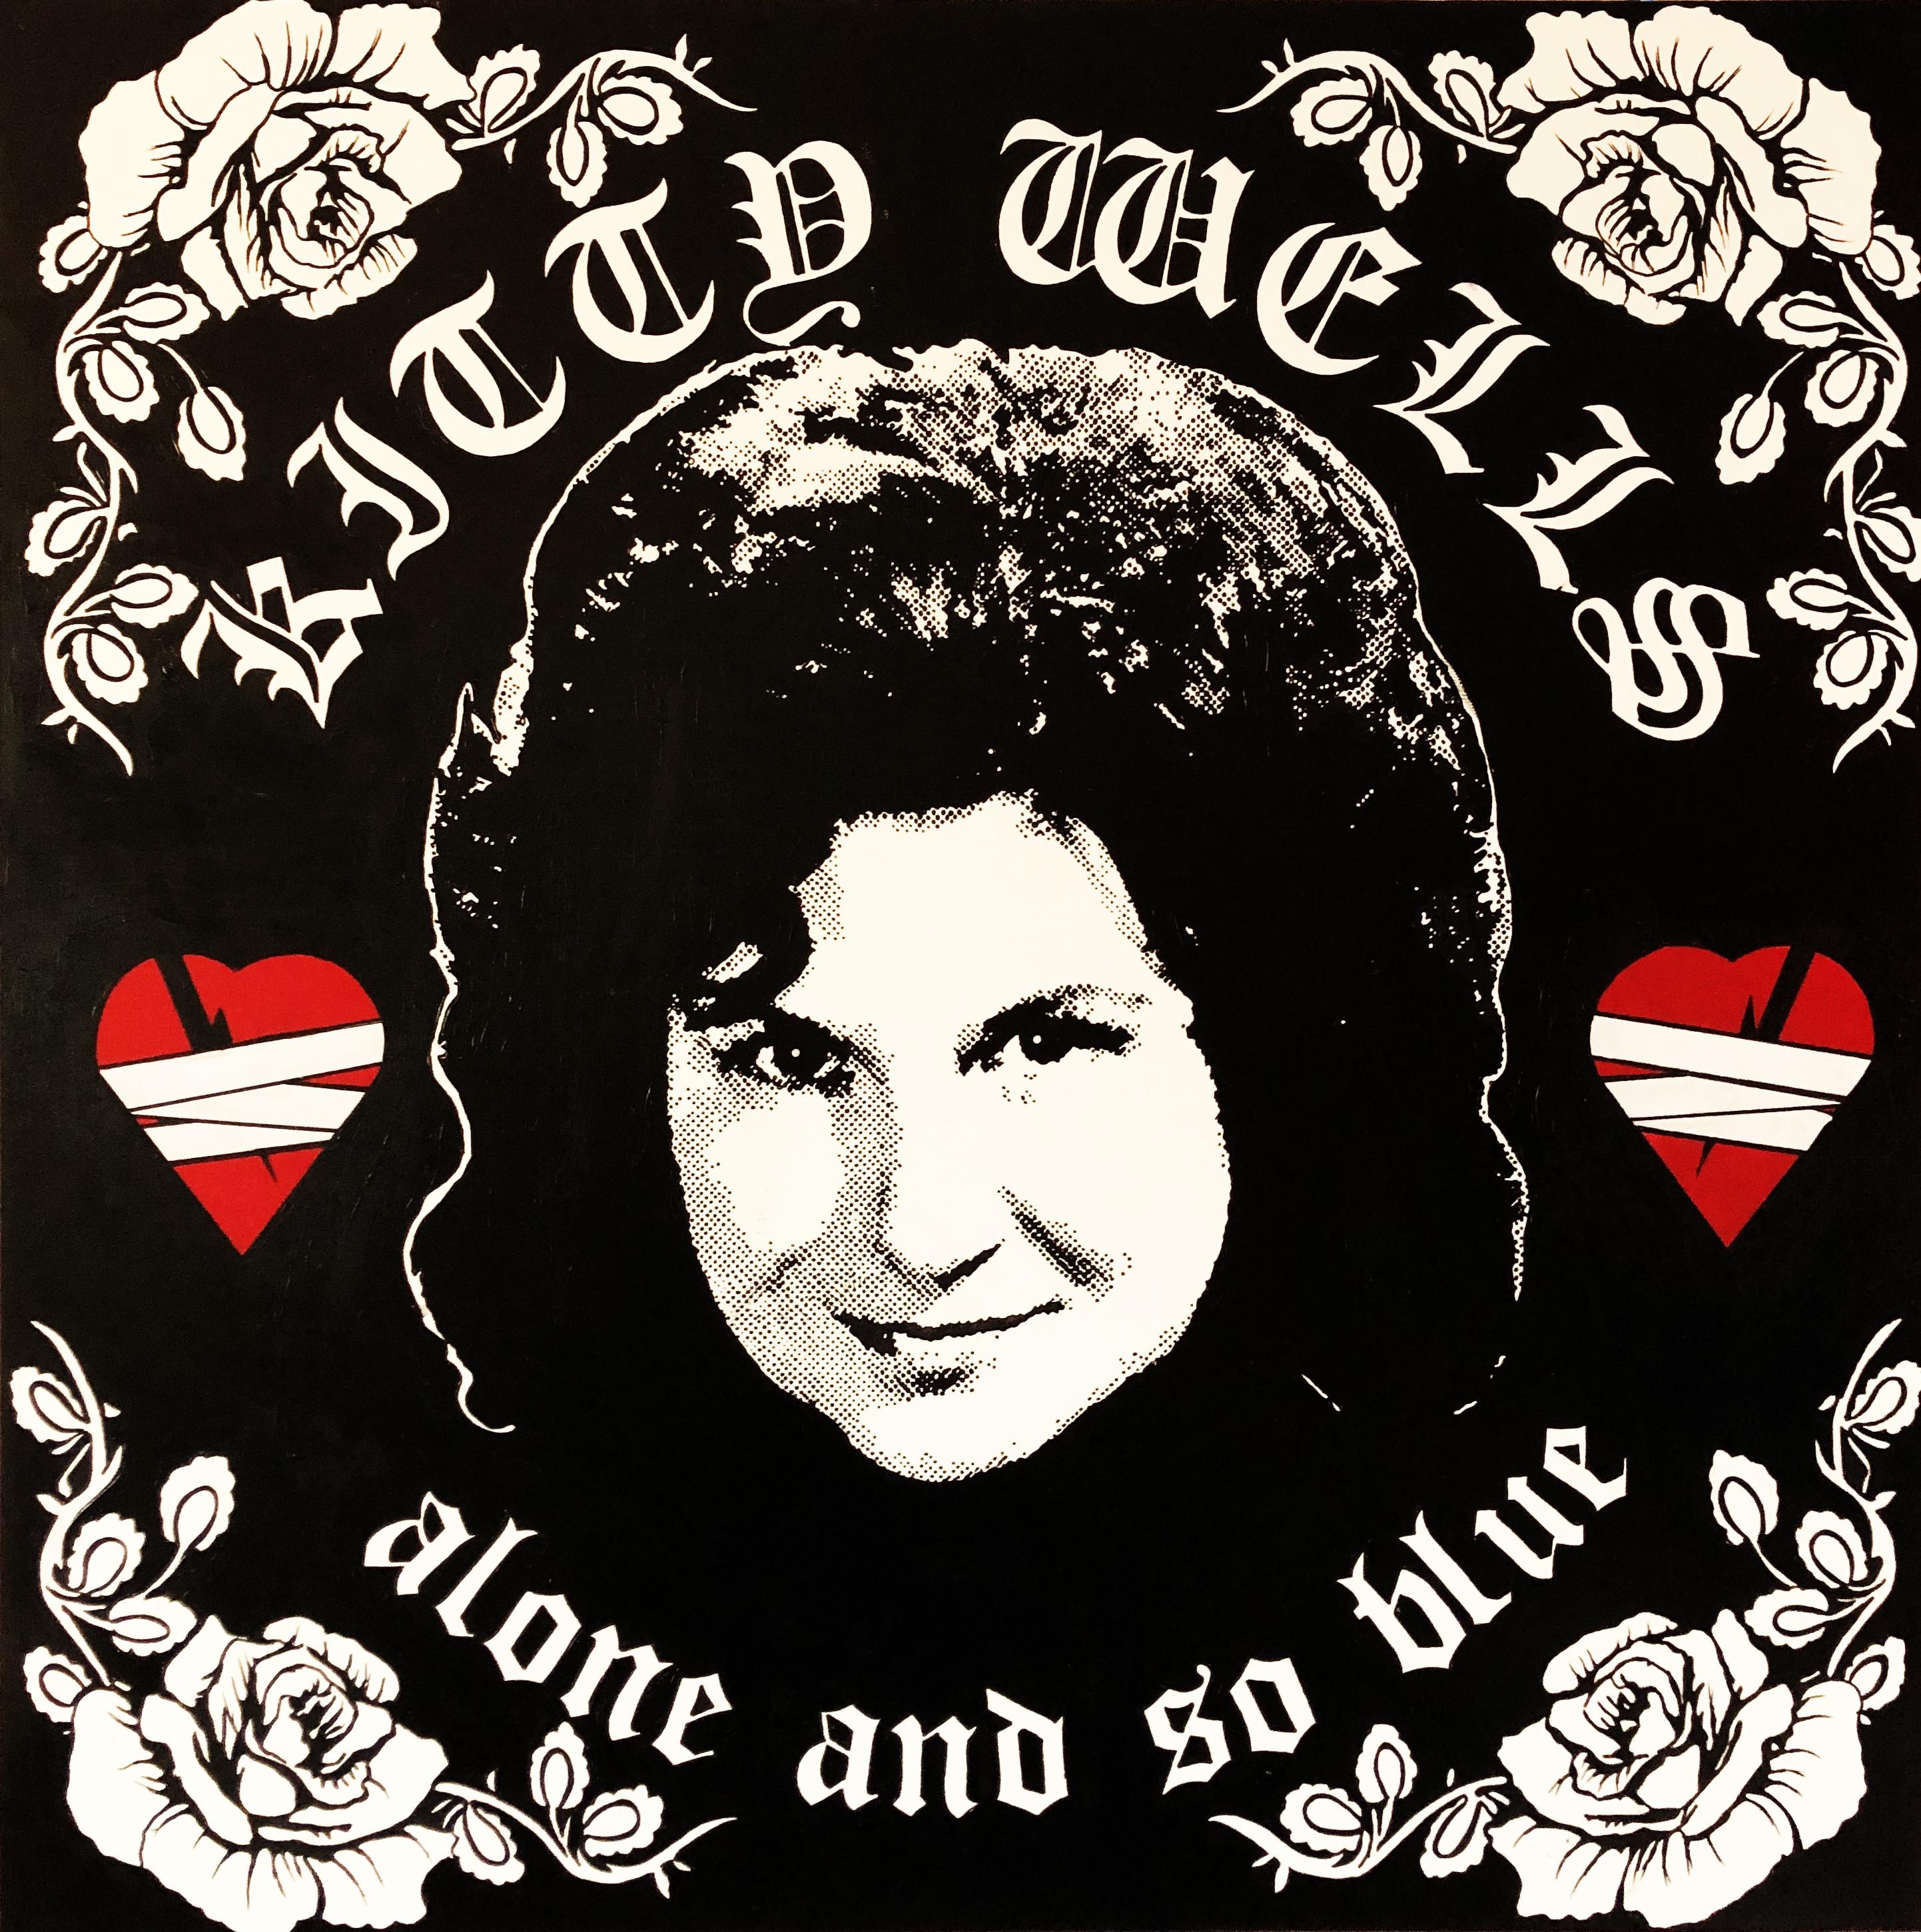 Alone And So Blue (Kitty Wells)